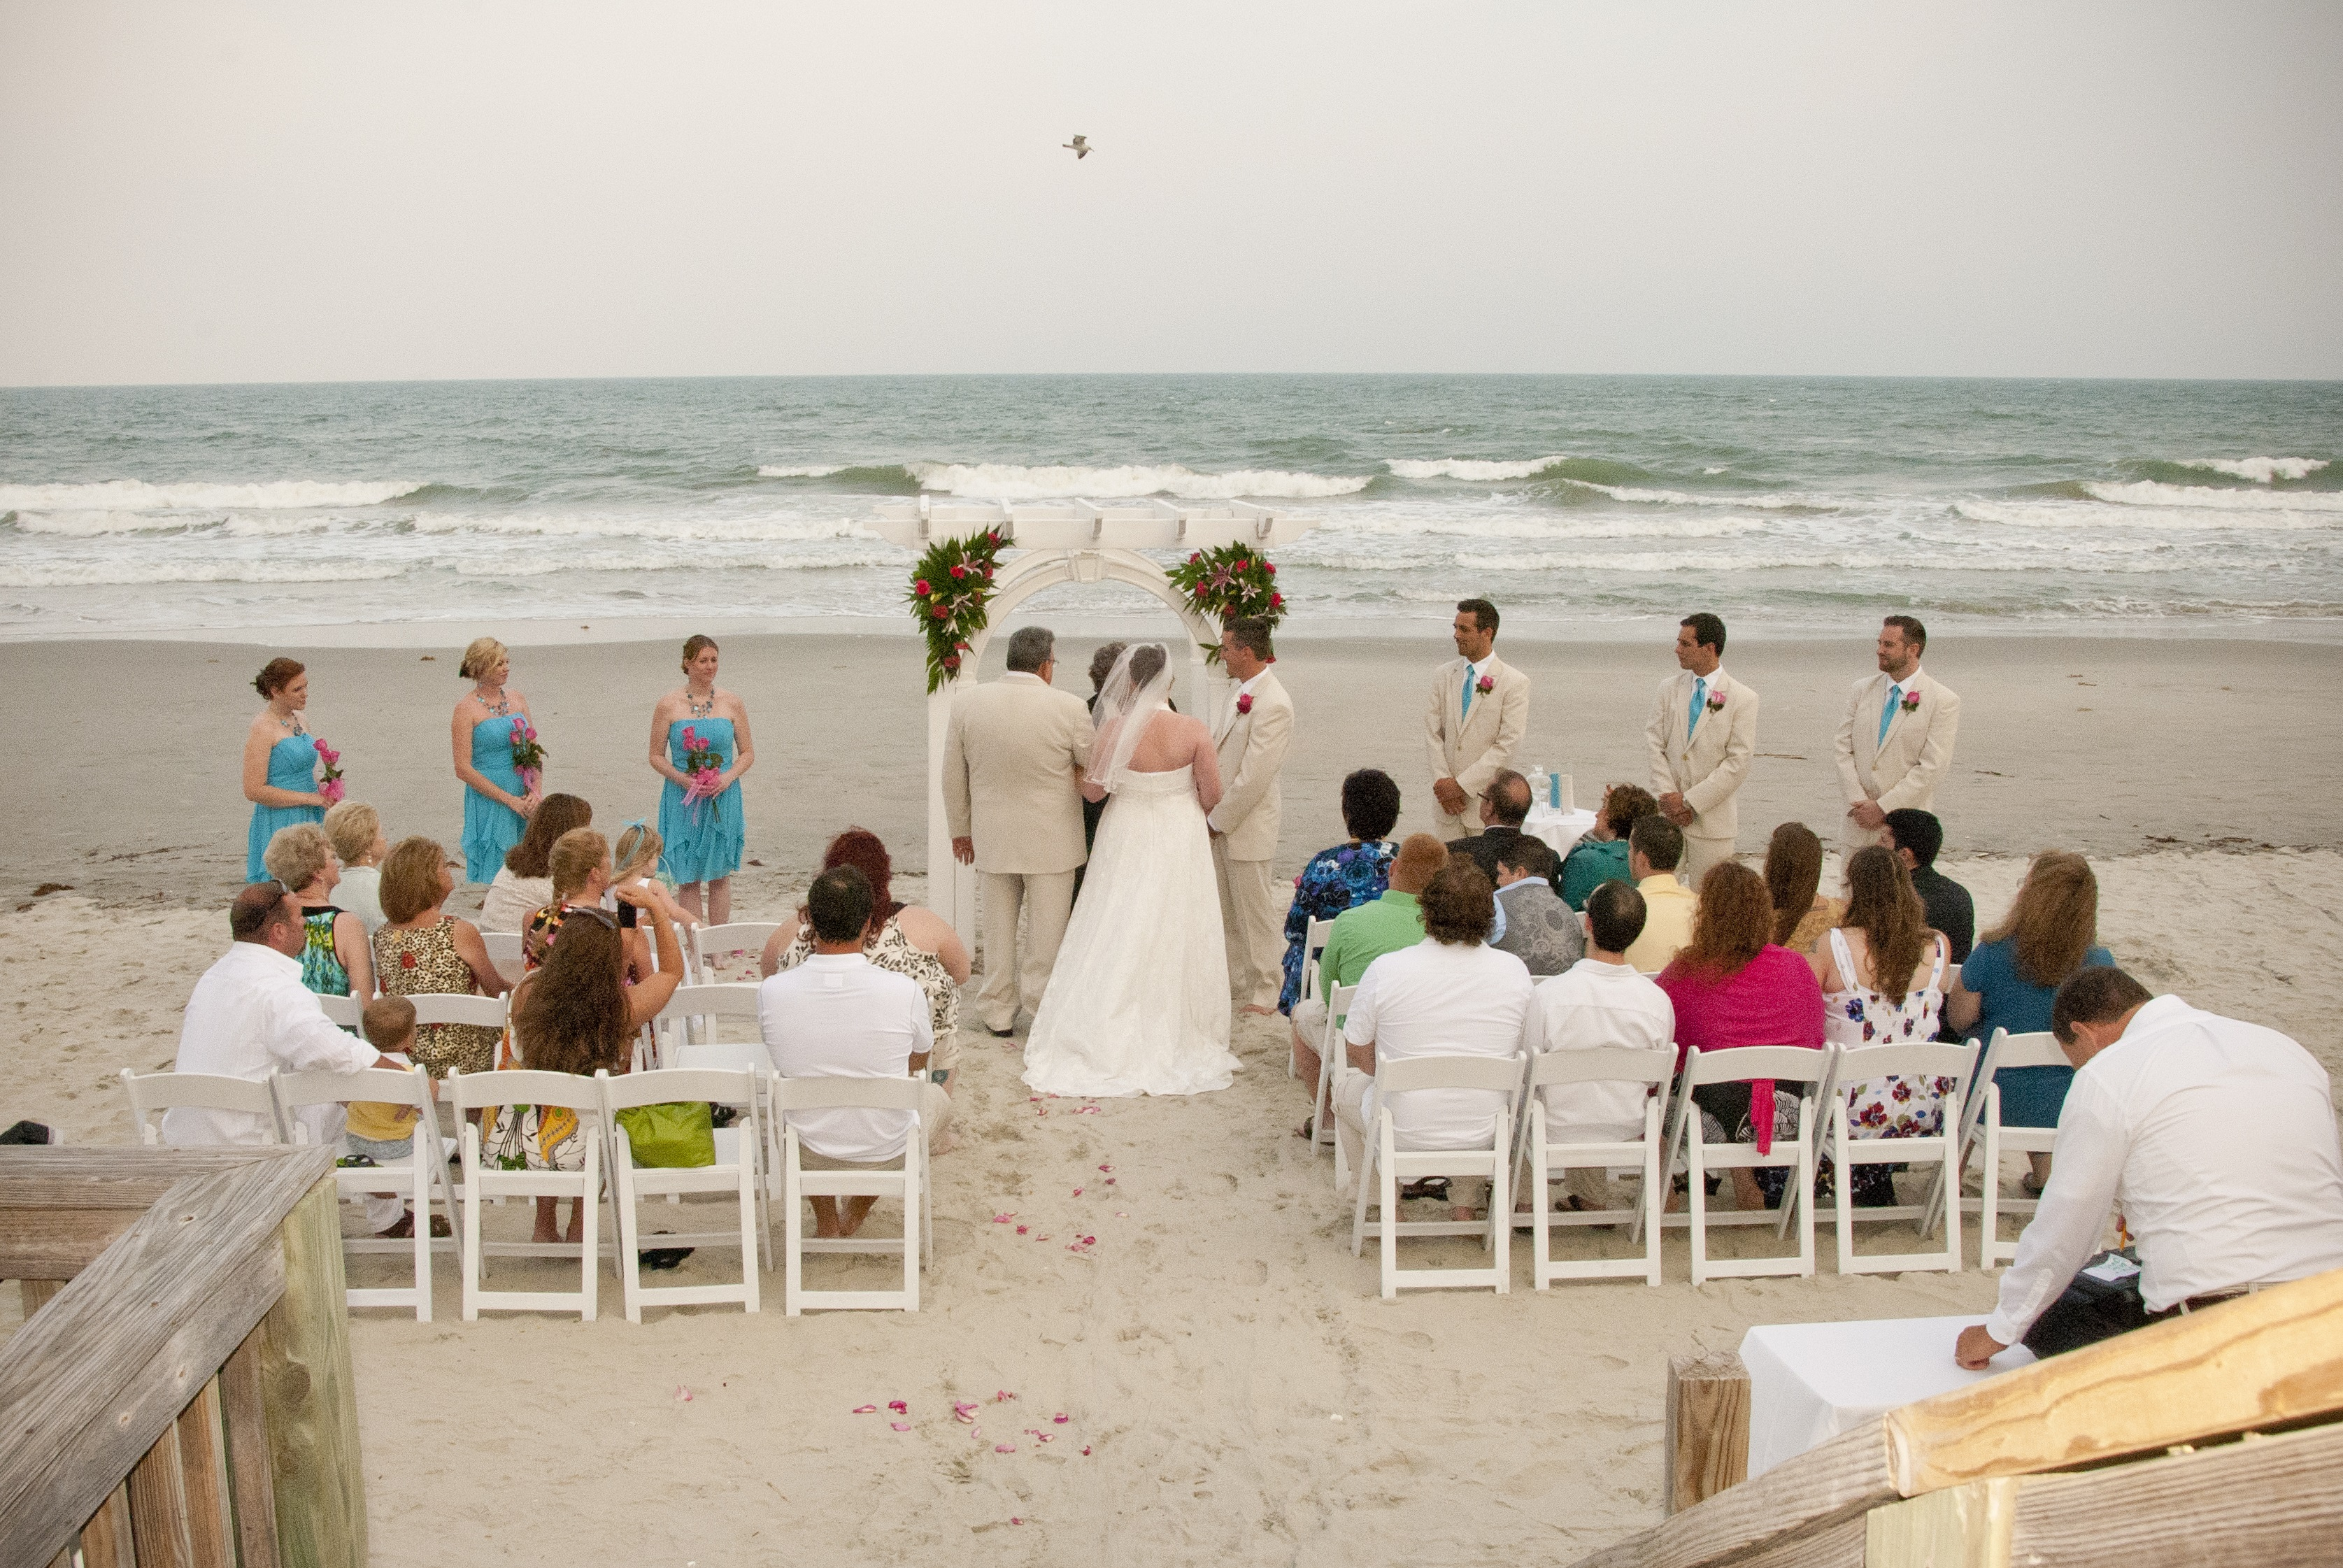 FAQ: Can You Get Married On The Beach?